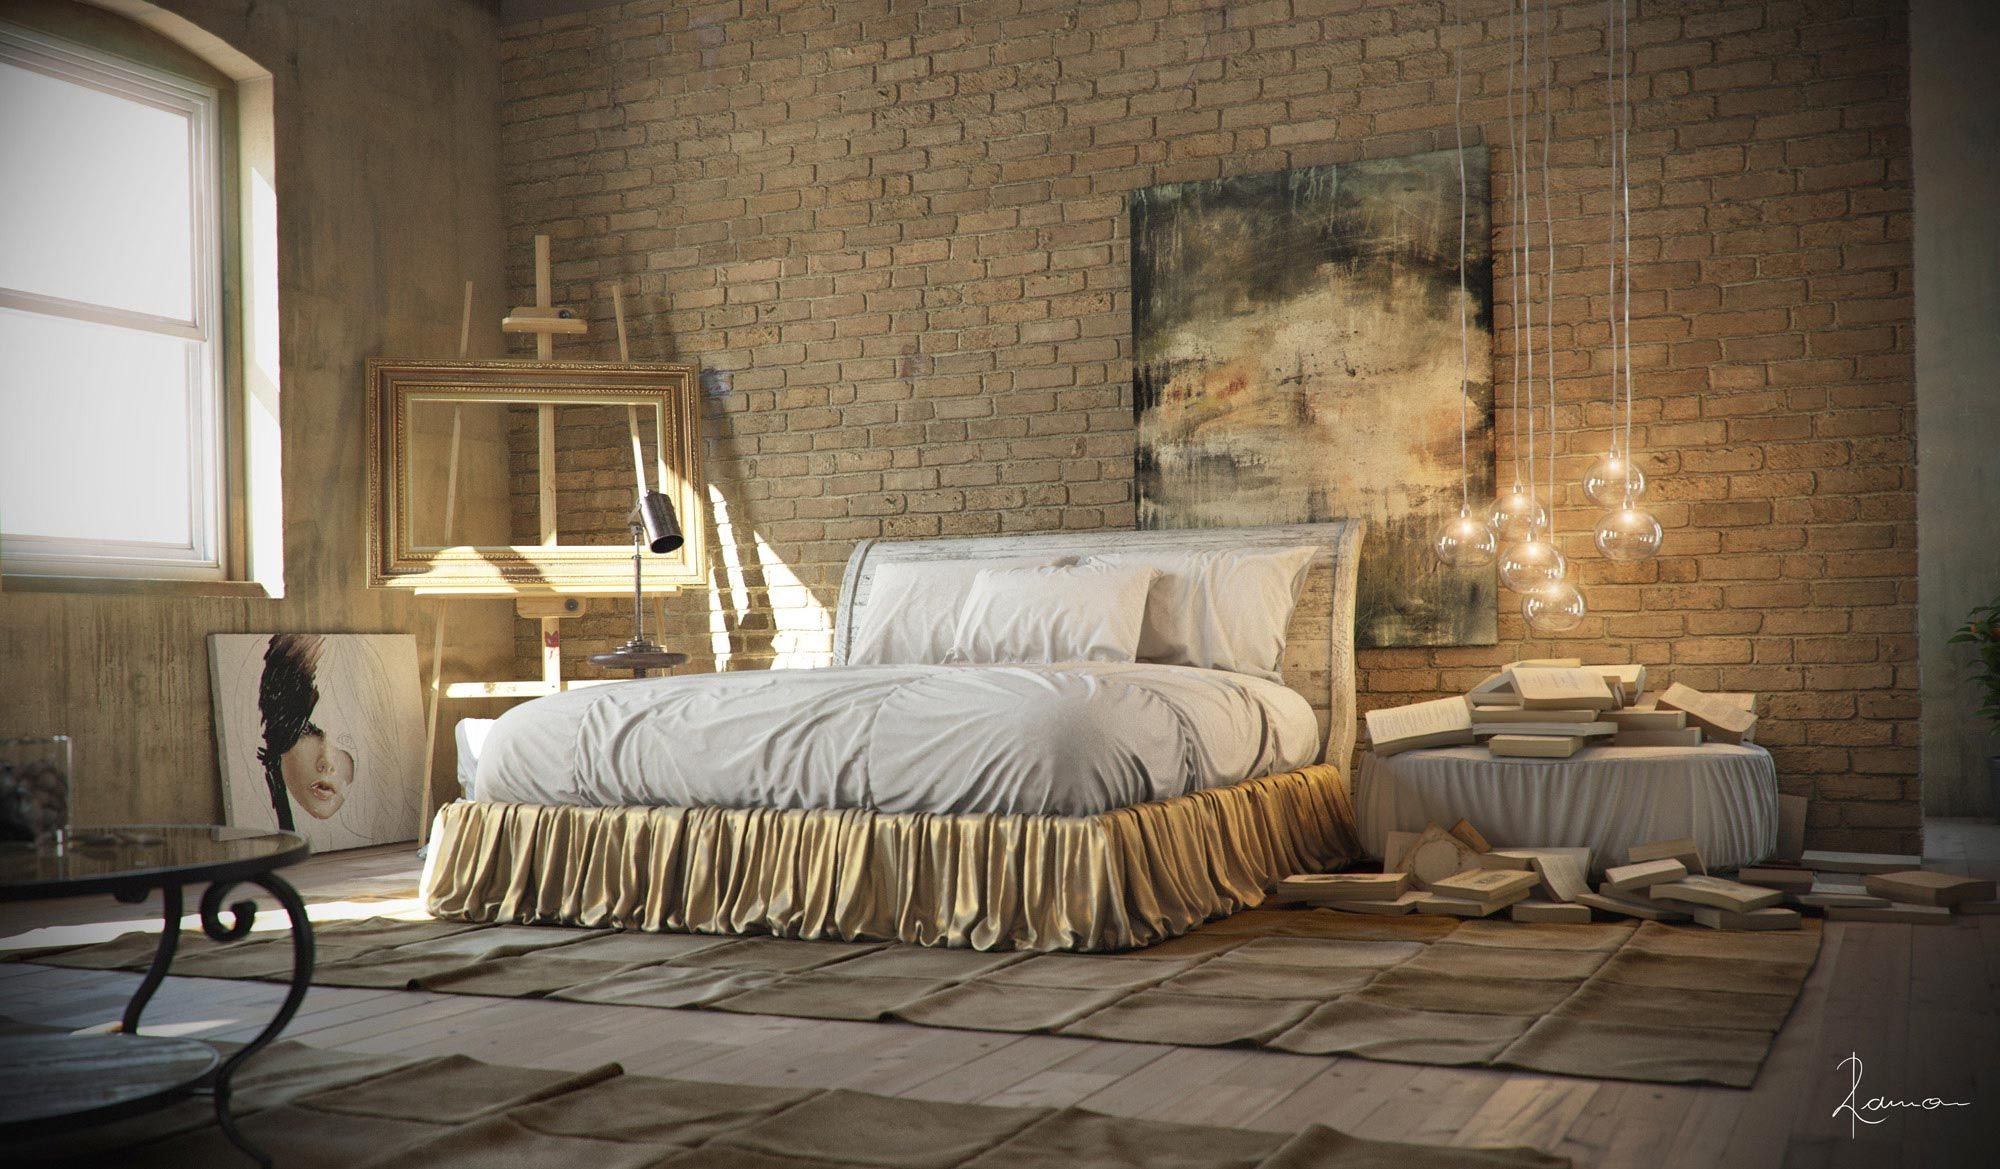 21 industrial bedroom designs - decoholic